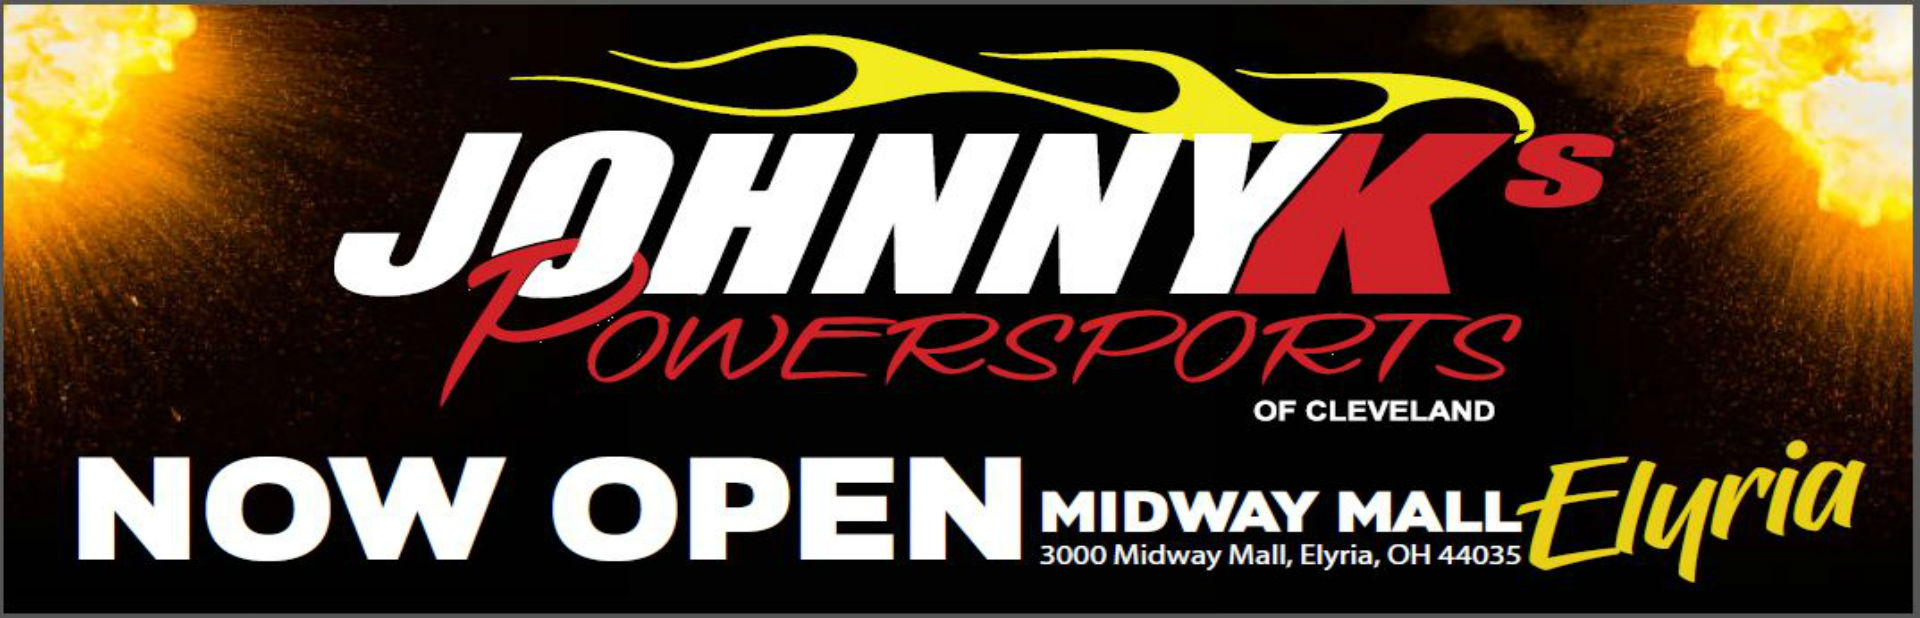 Johnny K's Powersports of Cleveland